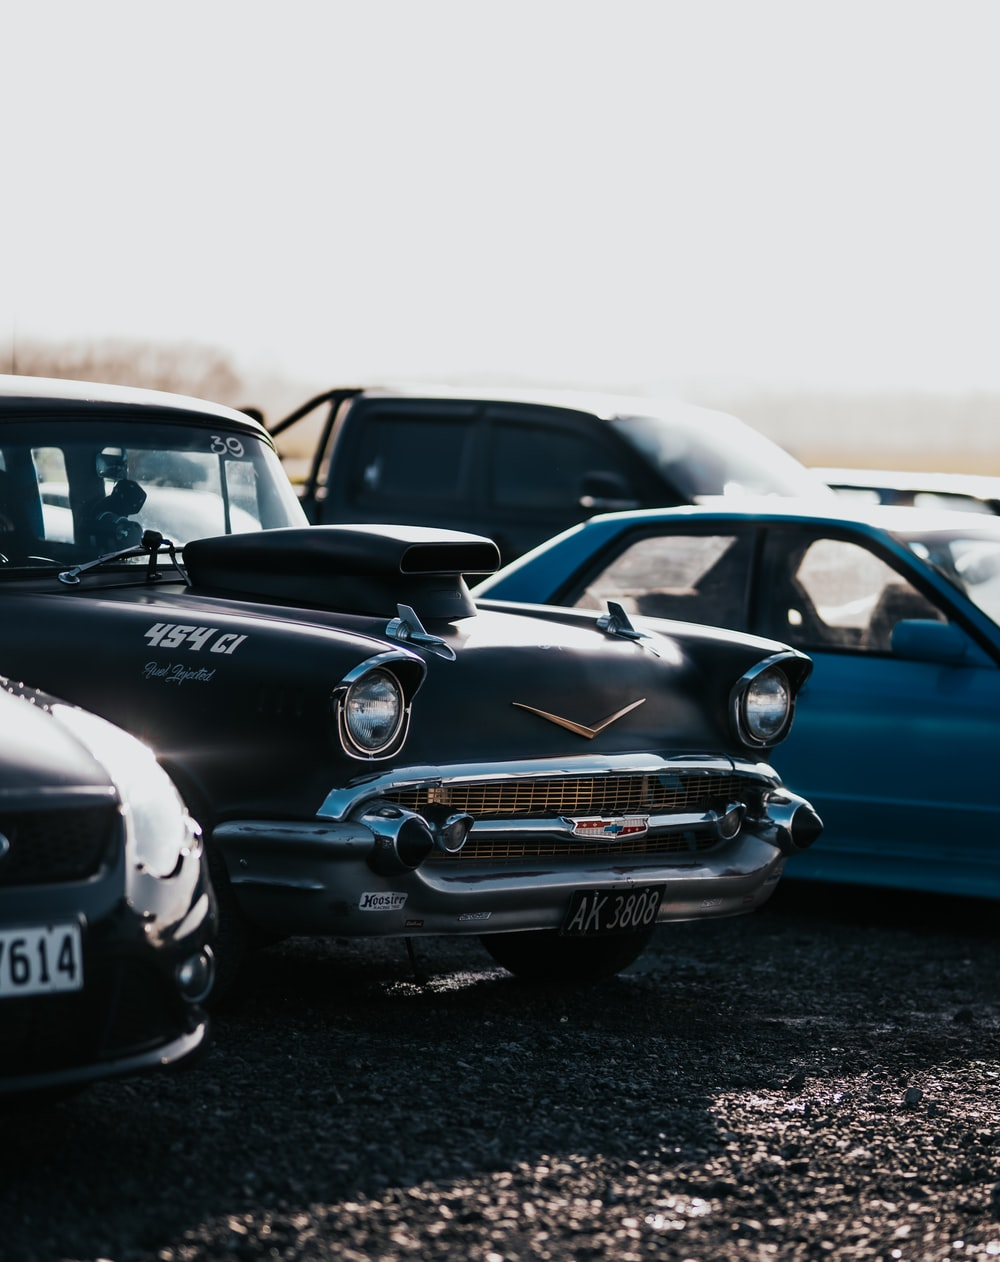 black and blue classic car on gray sand during daytime